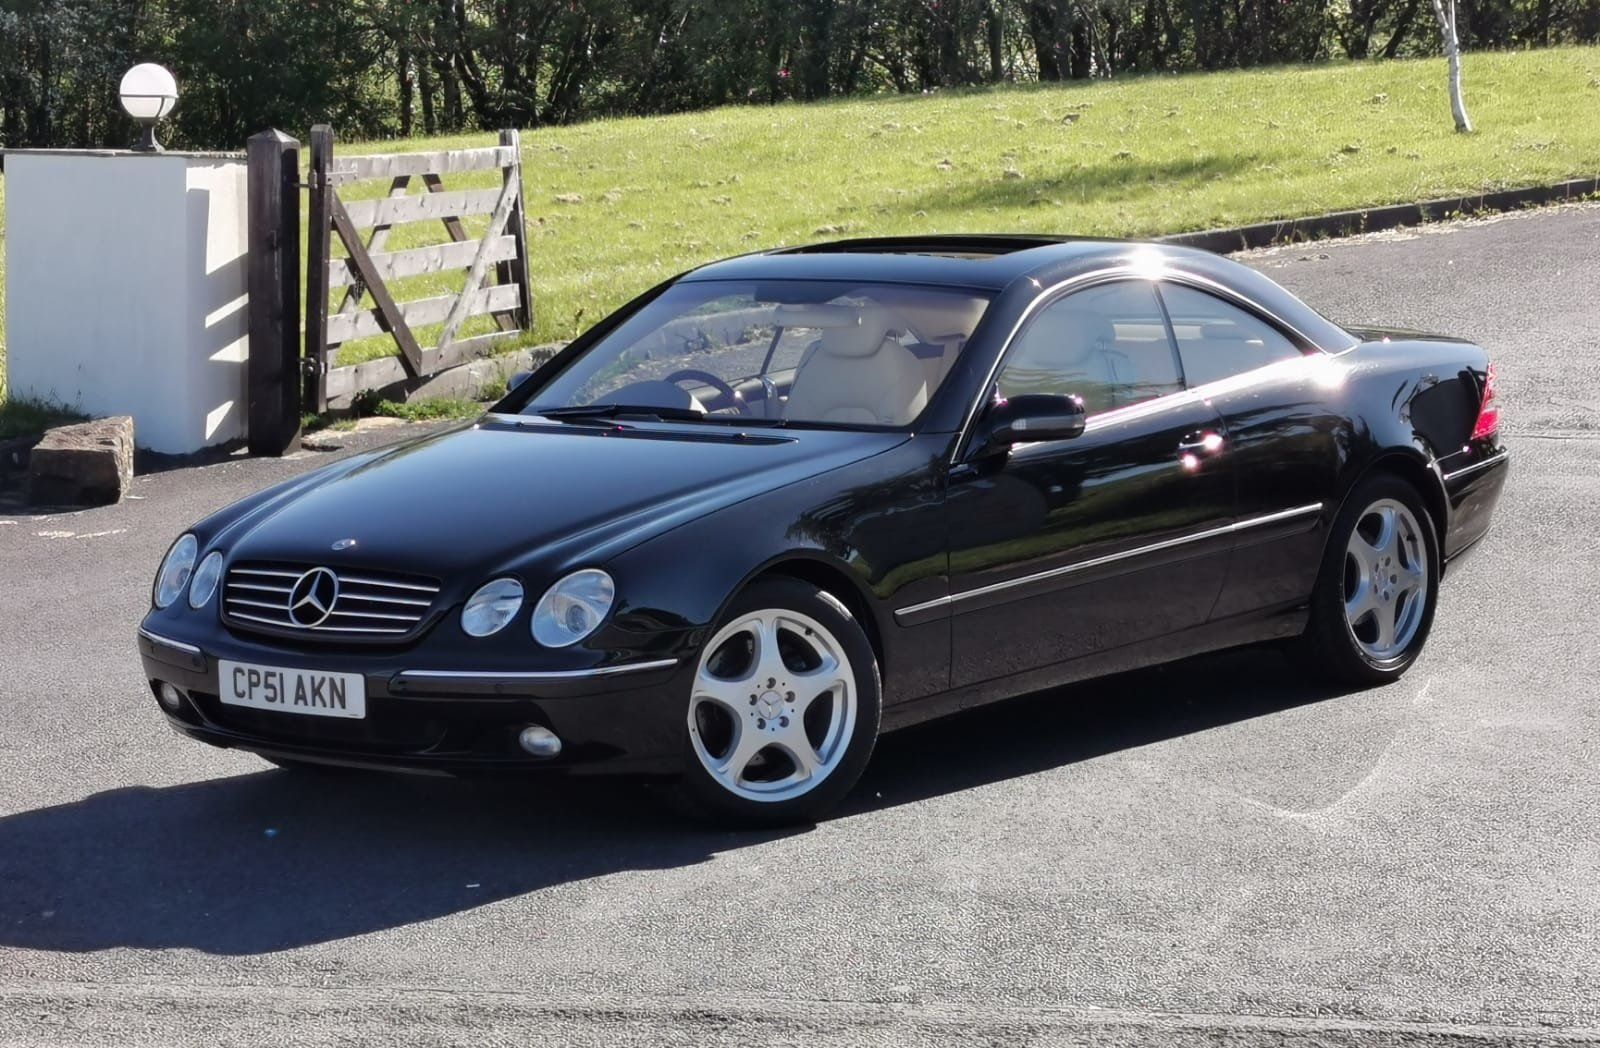 2001 Mercedes Benz CL500 1 Owner With Just 19,500 Miles  For Sale (picture 1 of 6)